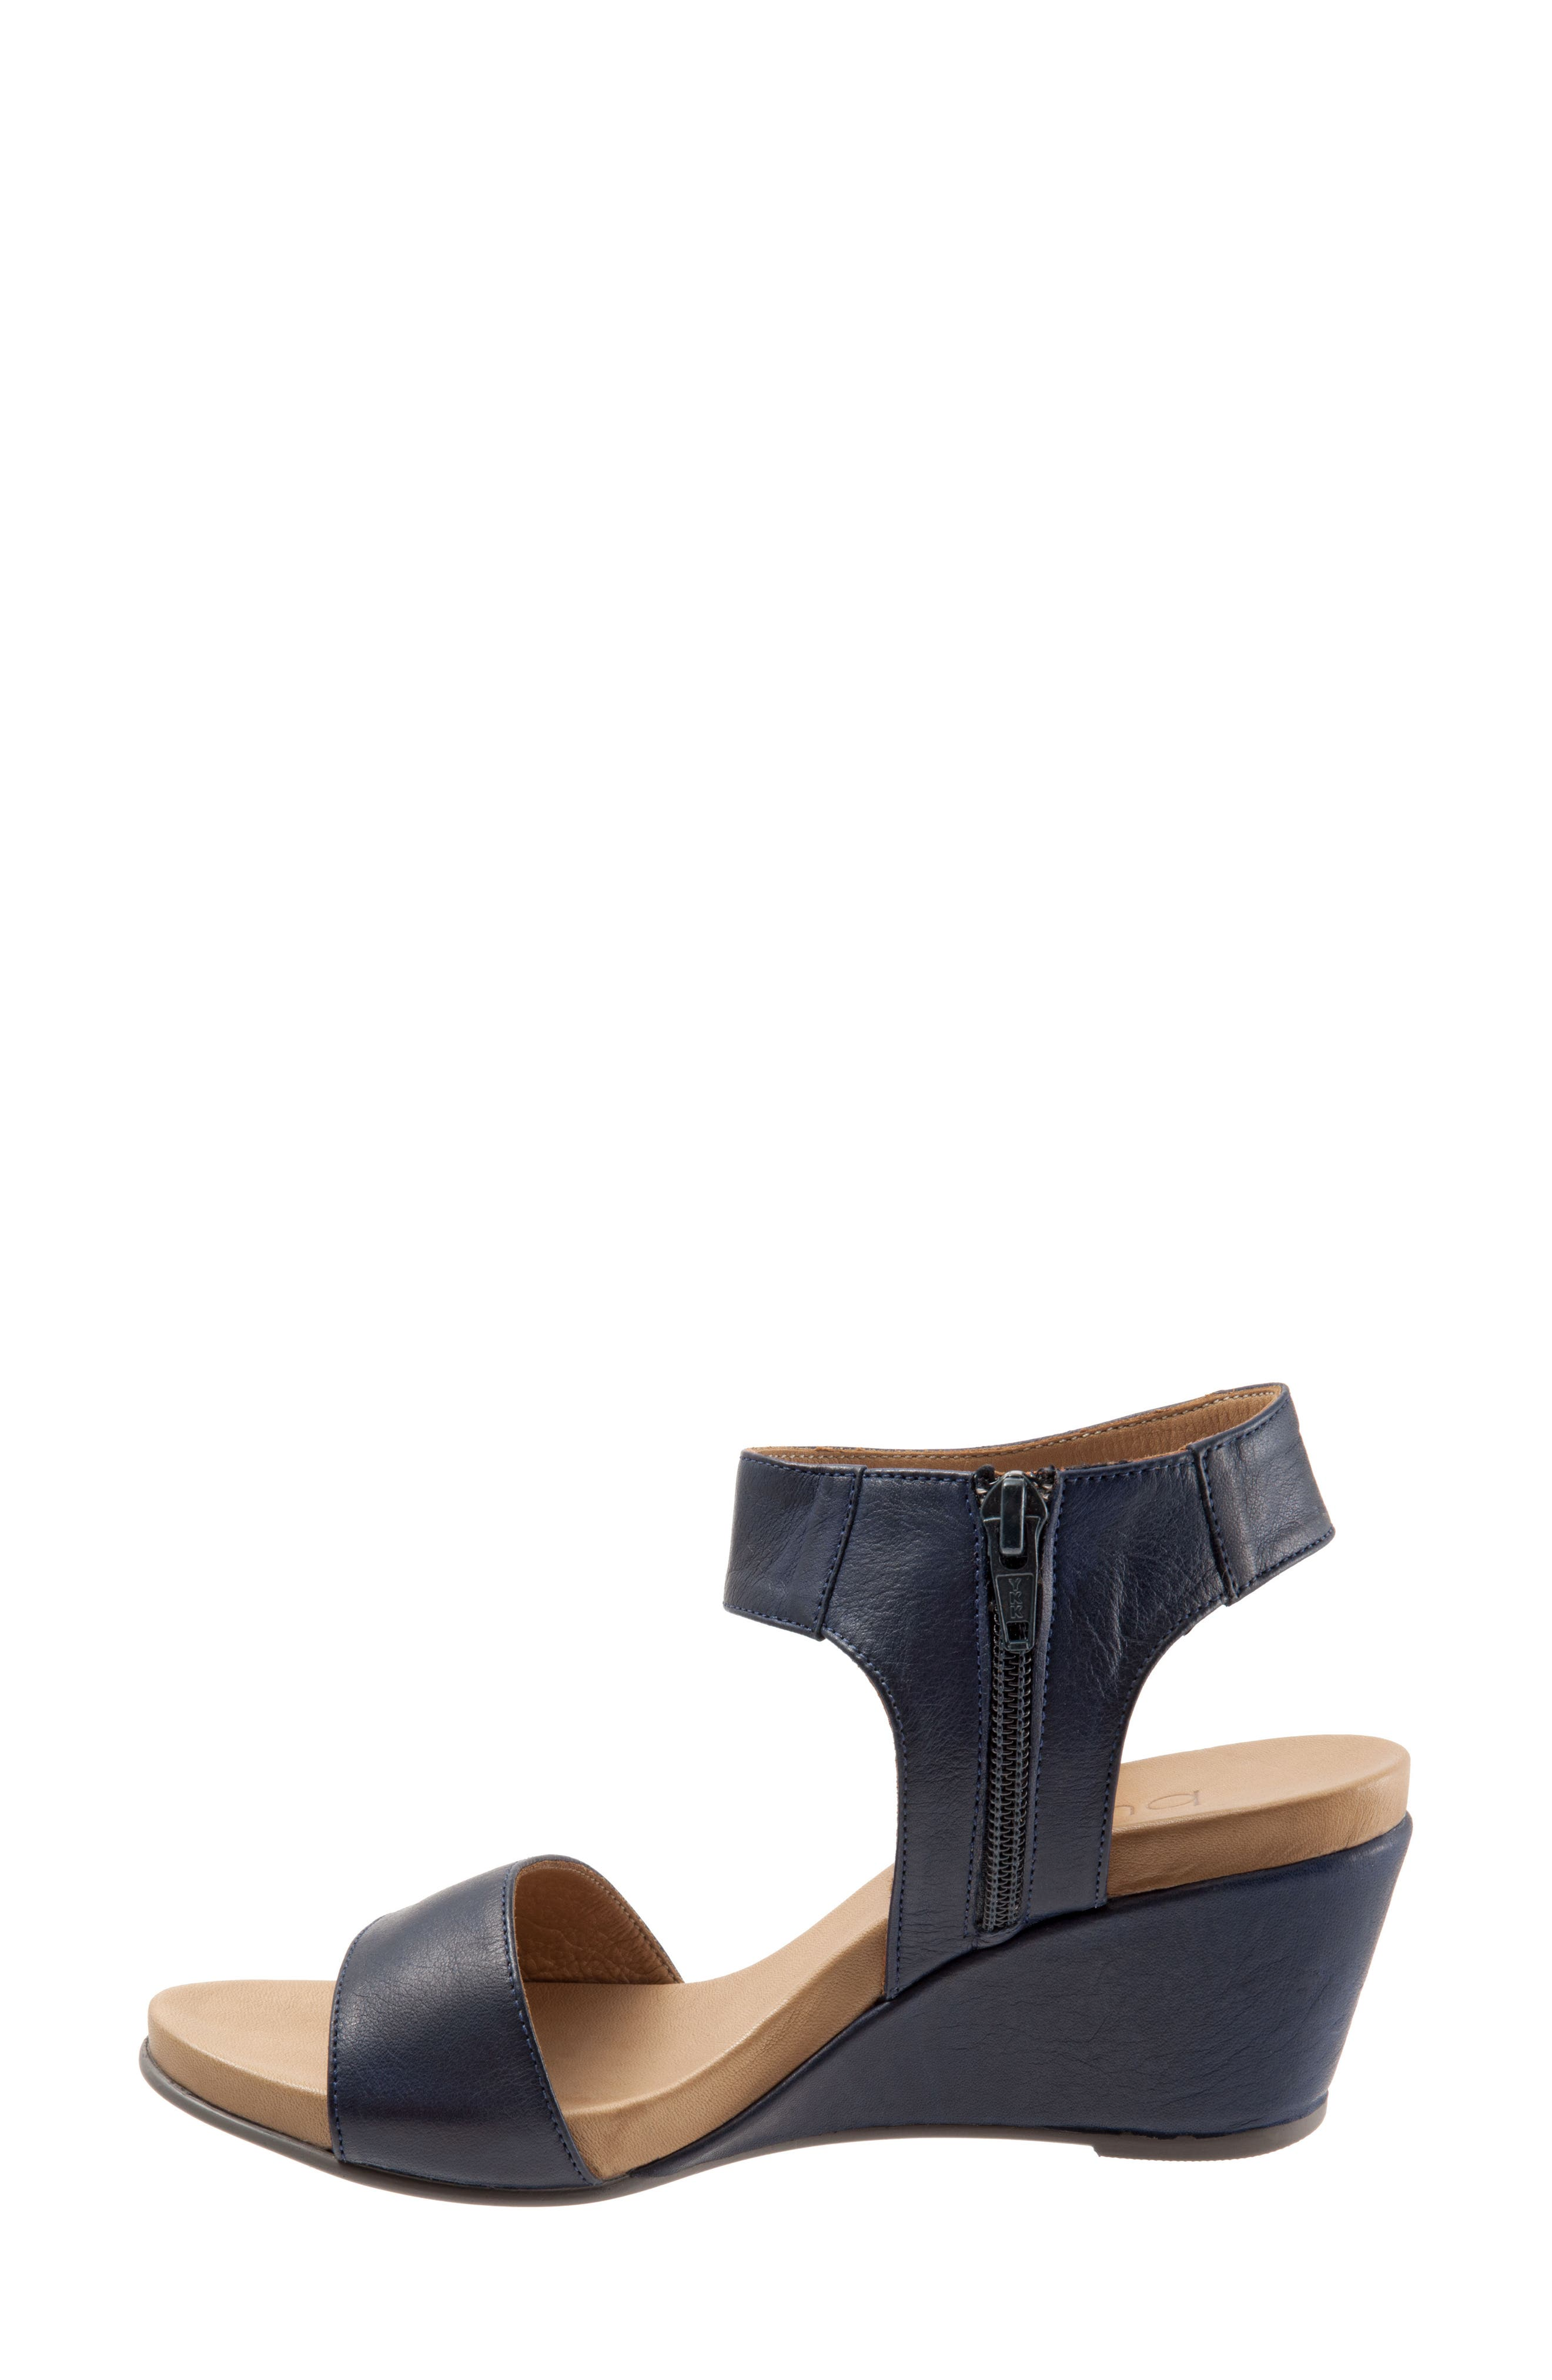 Ida Wedge Sandal,                             Alternate thumbnail 4, color,                             Black Leather